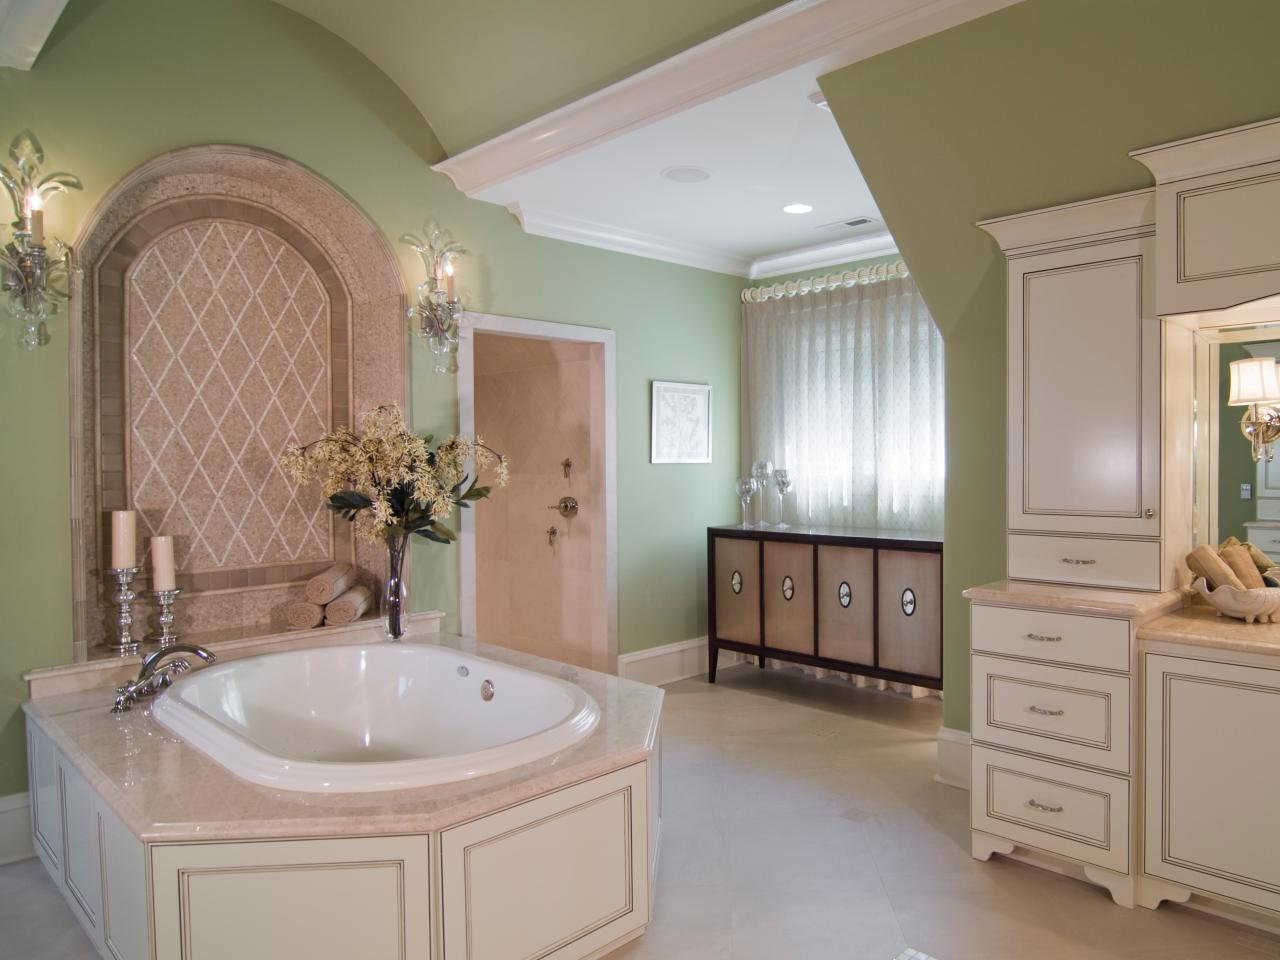 How to improve master bathroom designs in better way for Master bathroom designs